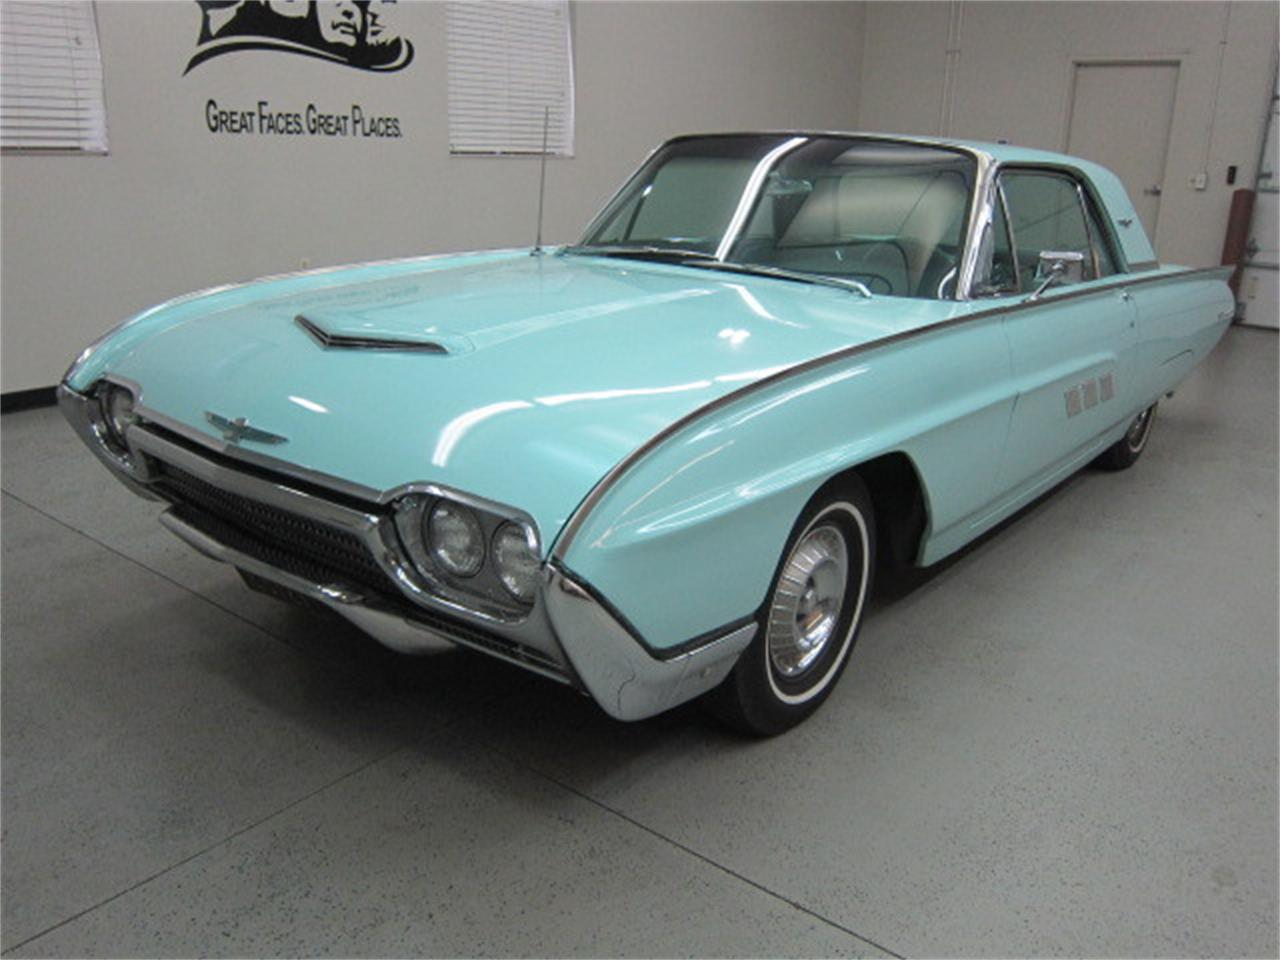 Large picture of 63 thunderbird cnc9